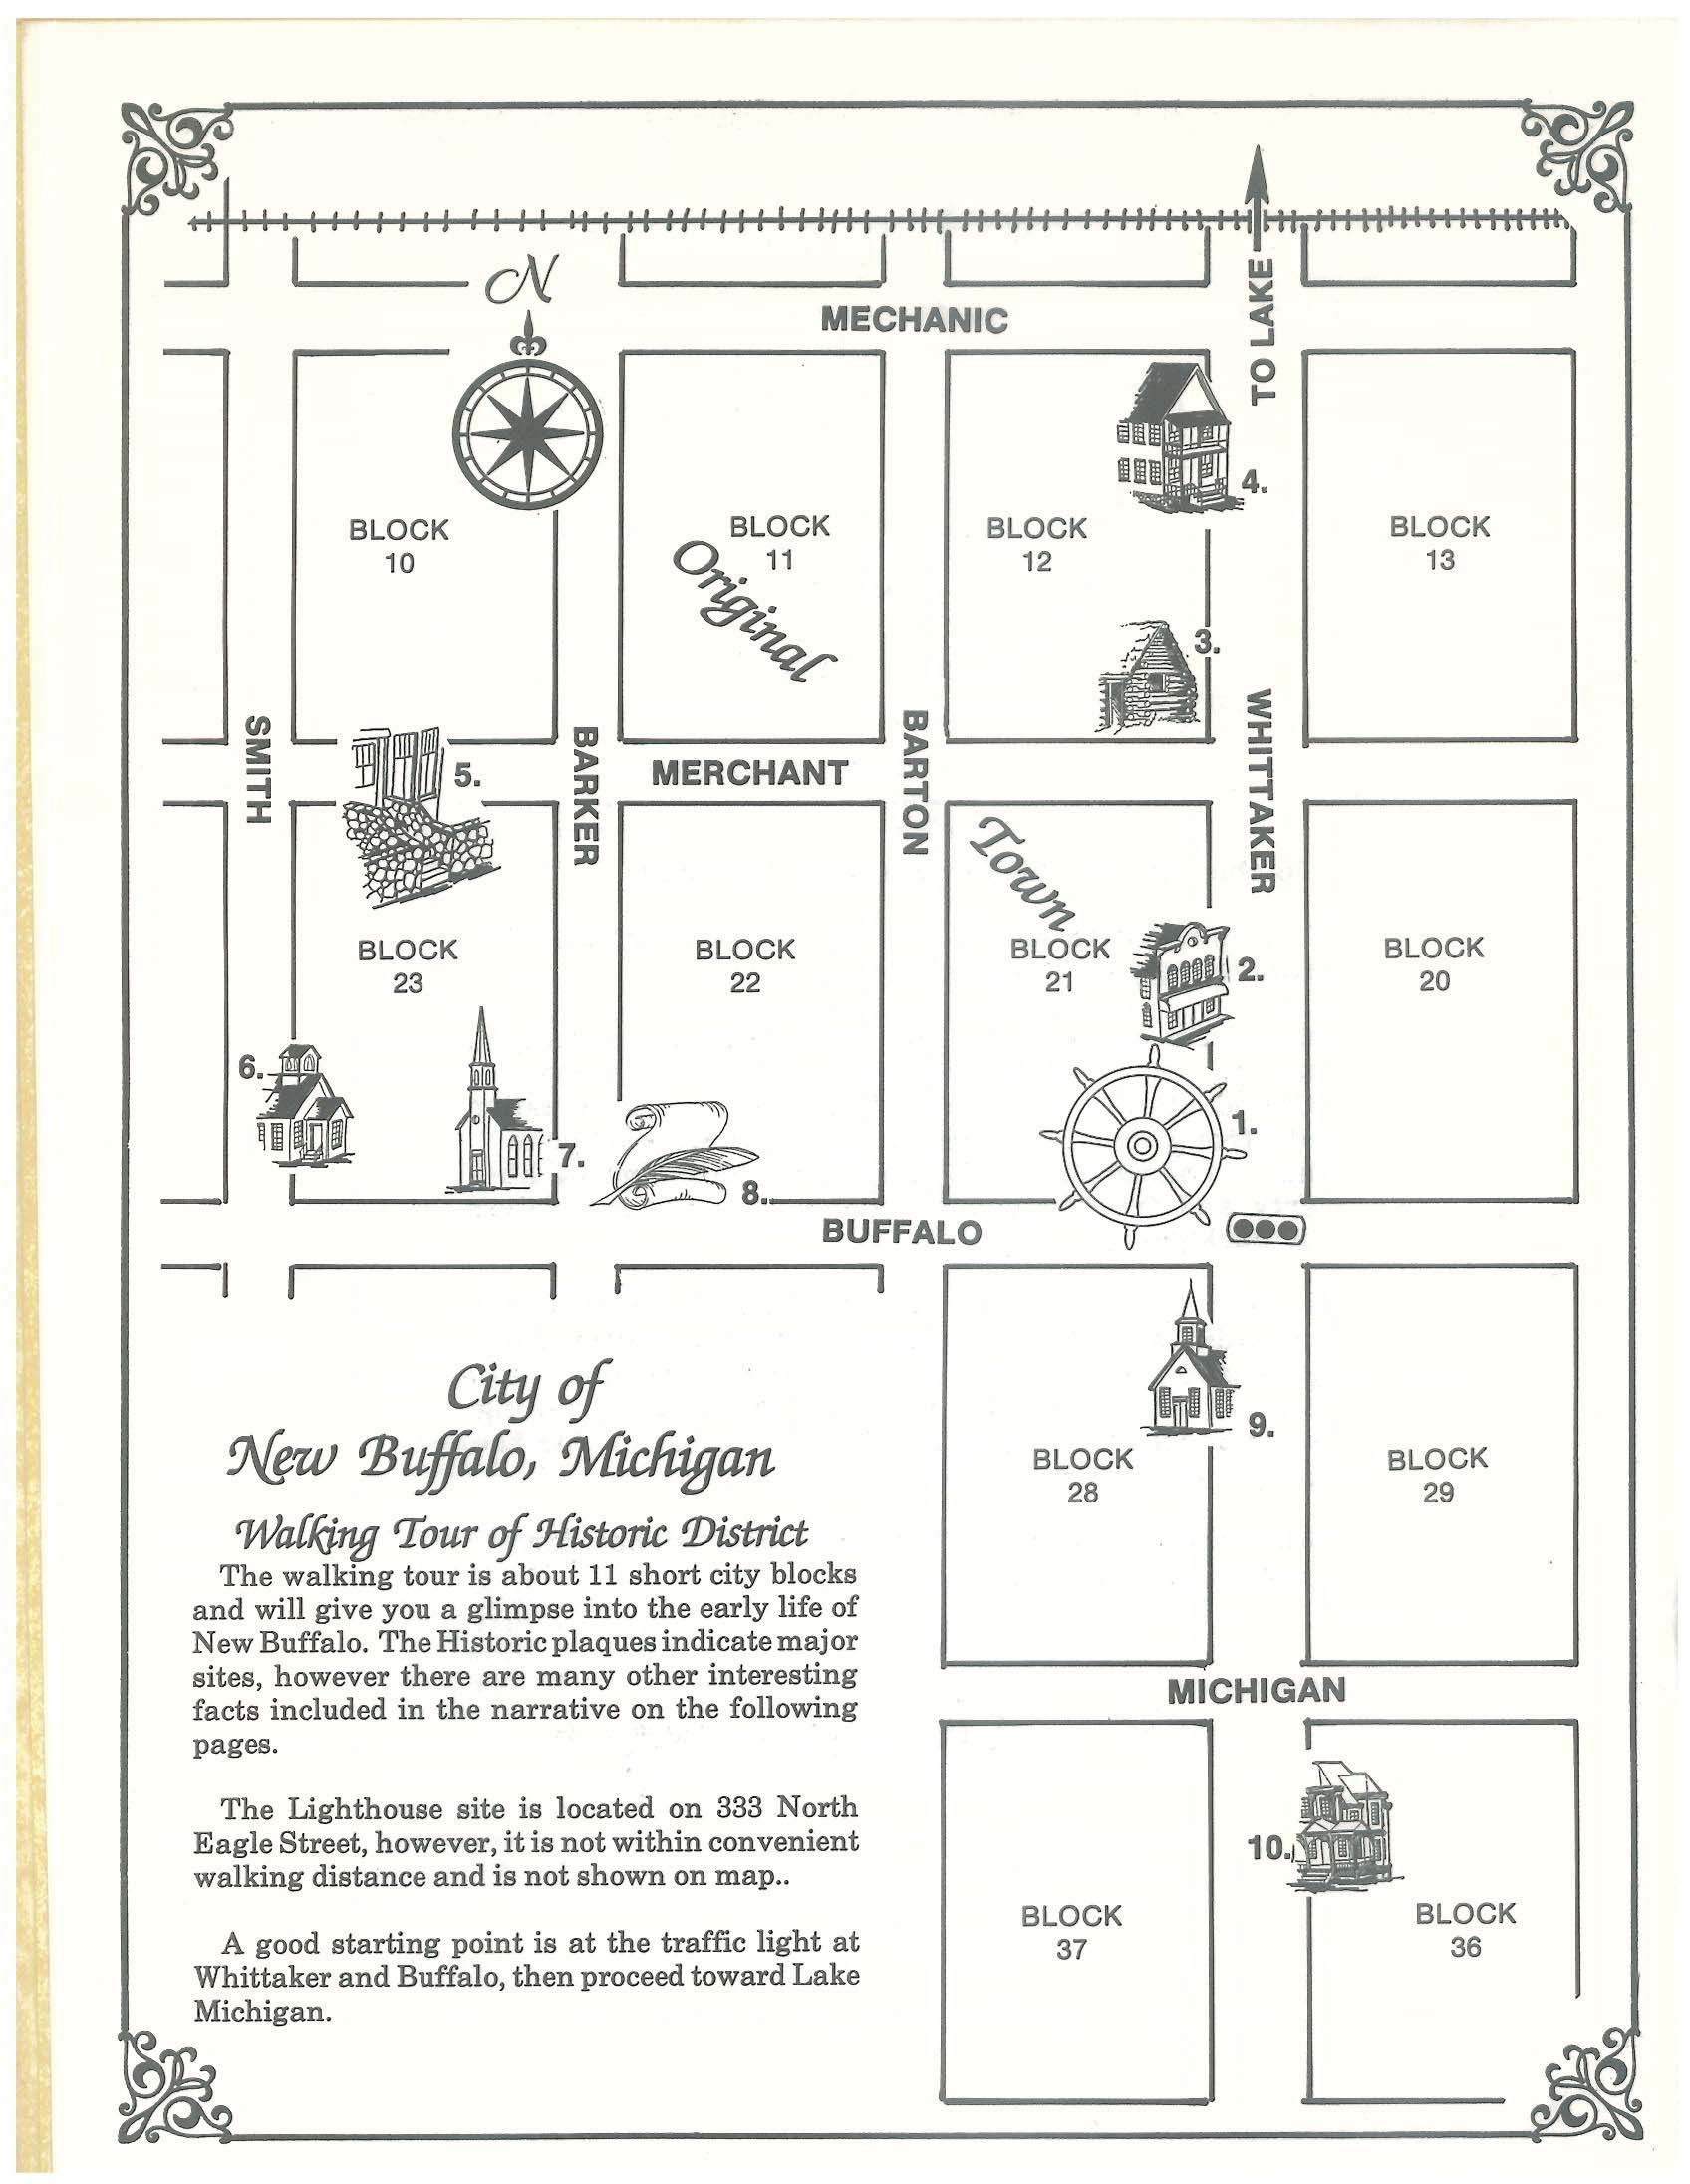 sesquicentennial_historic_sites_walking_tour_guide_Page_1.jpg